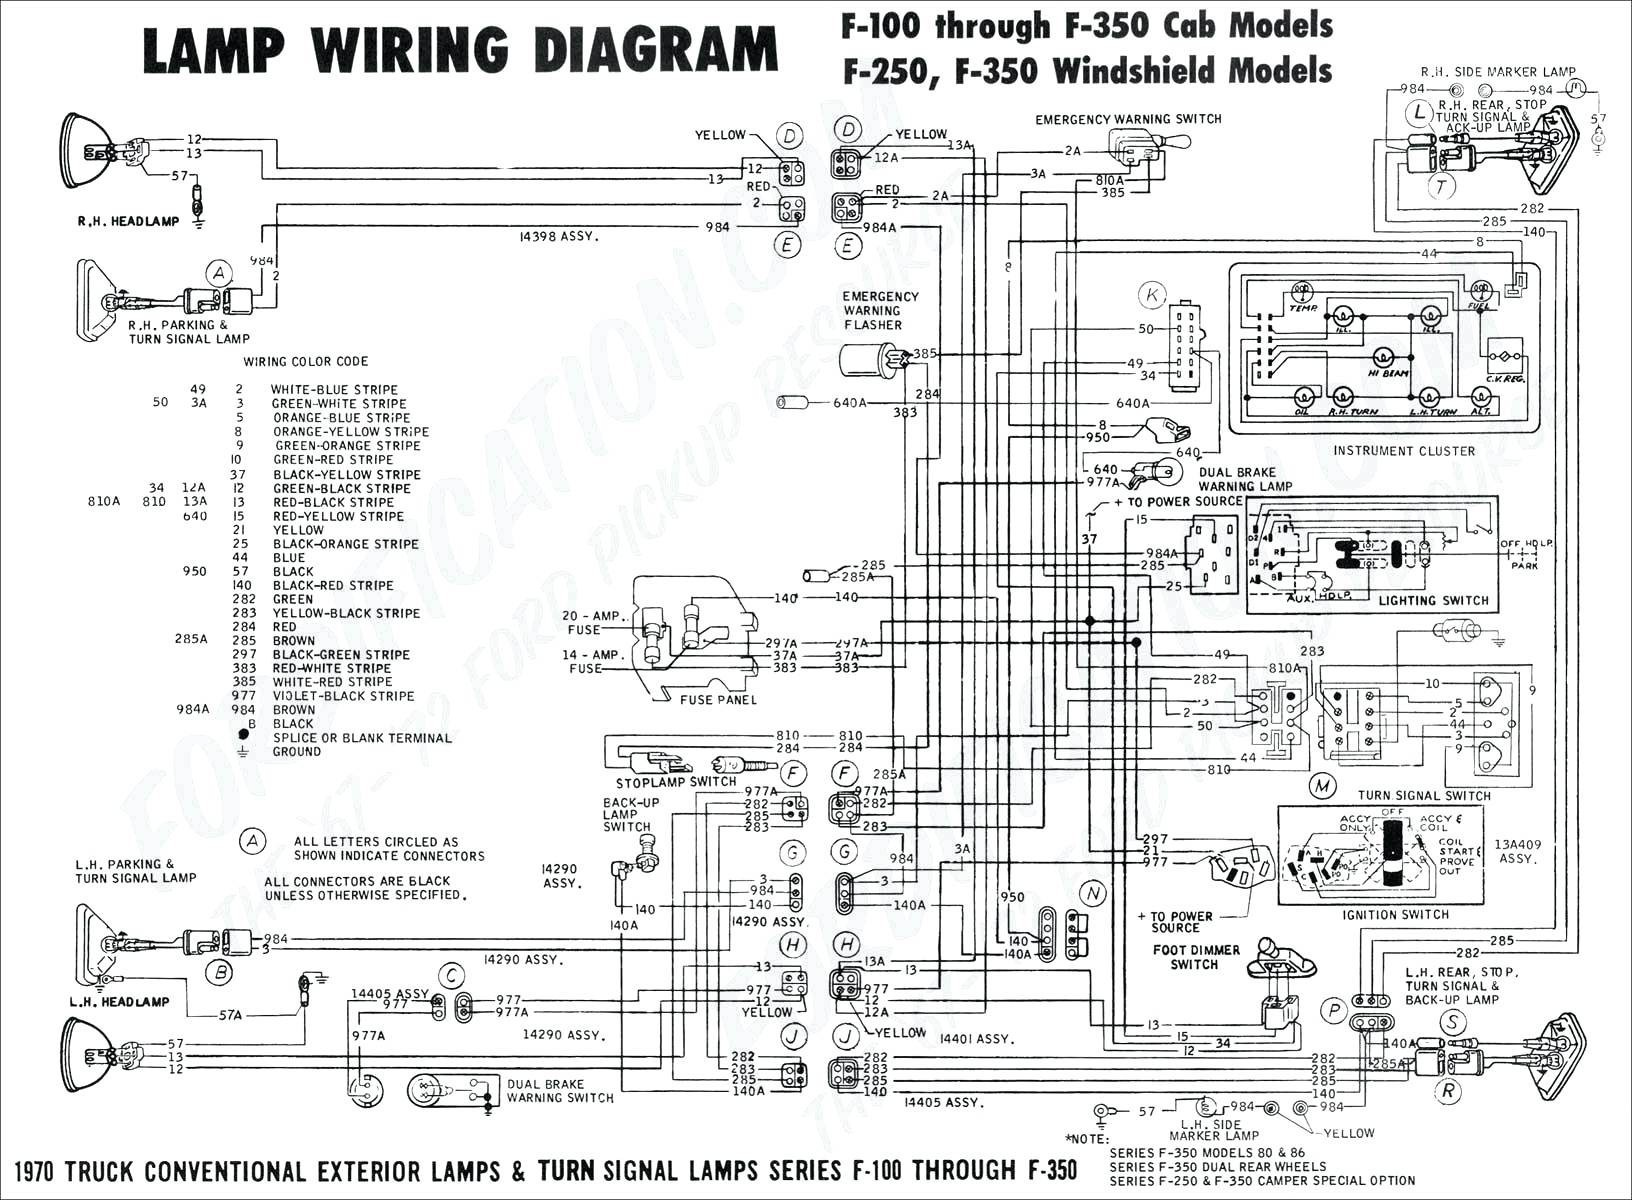 1988 chevy 454 engine diagram best wiring library rh 198 ucfccc org